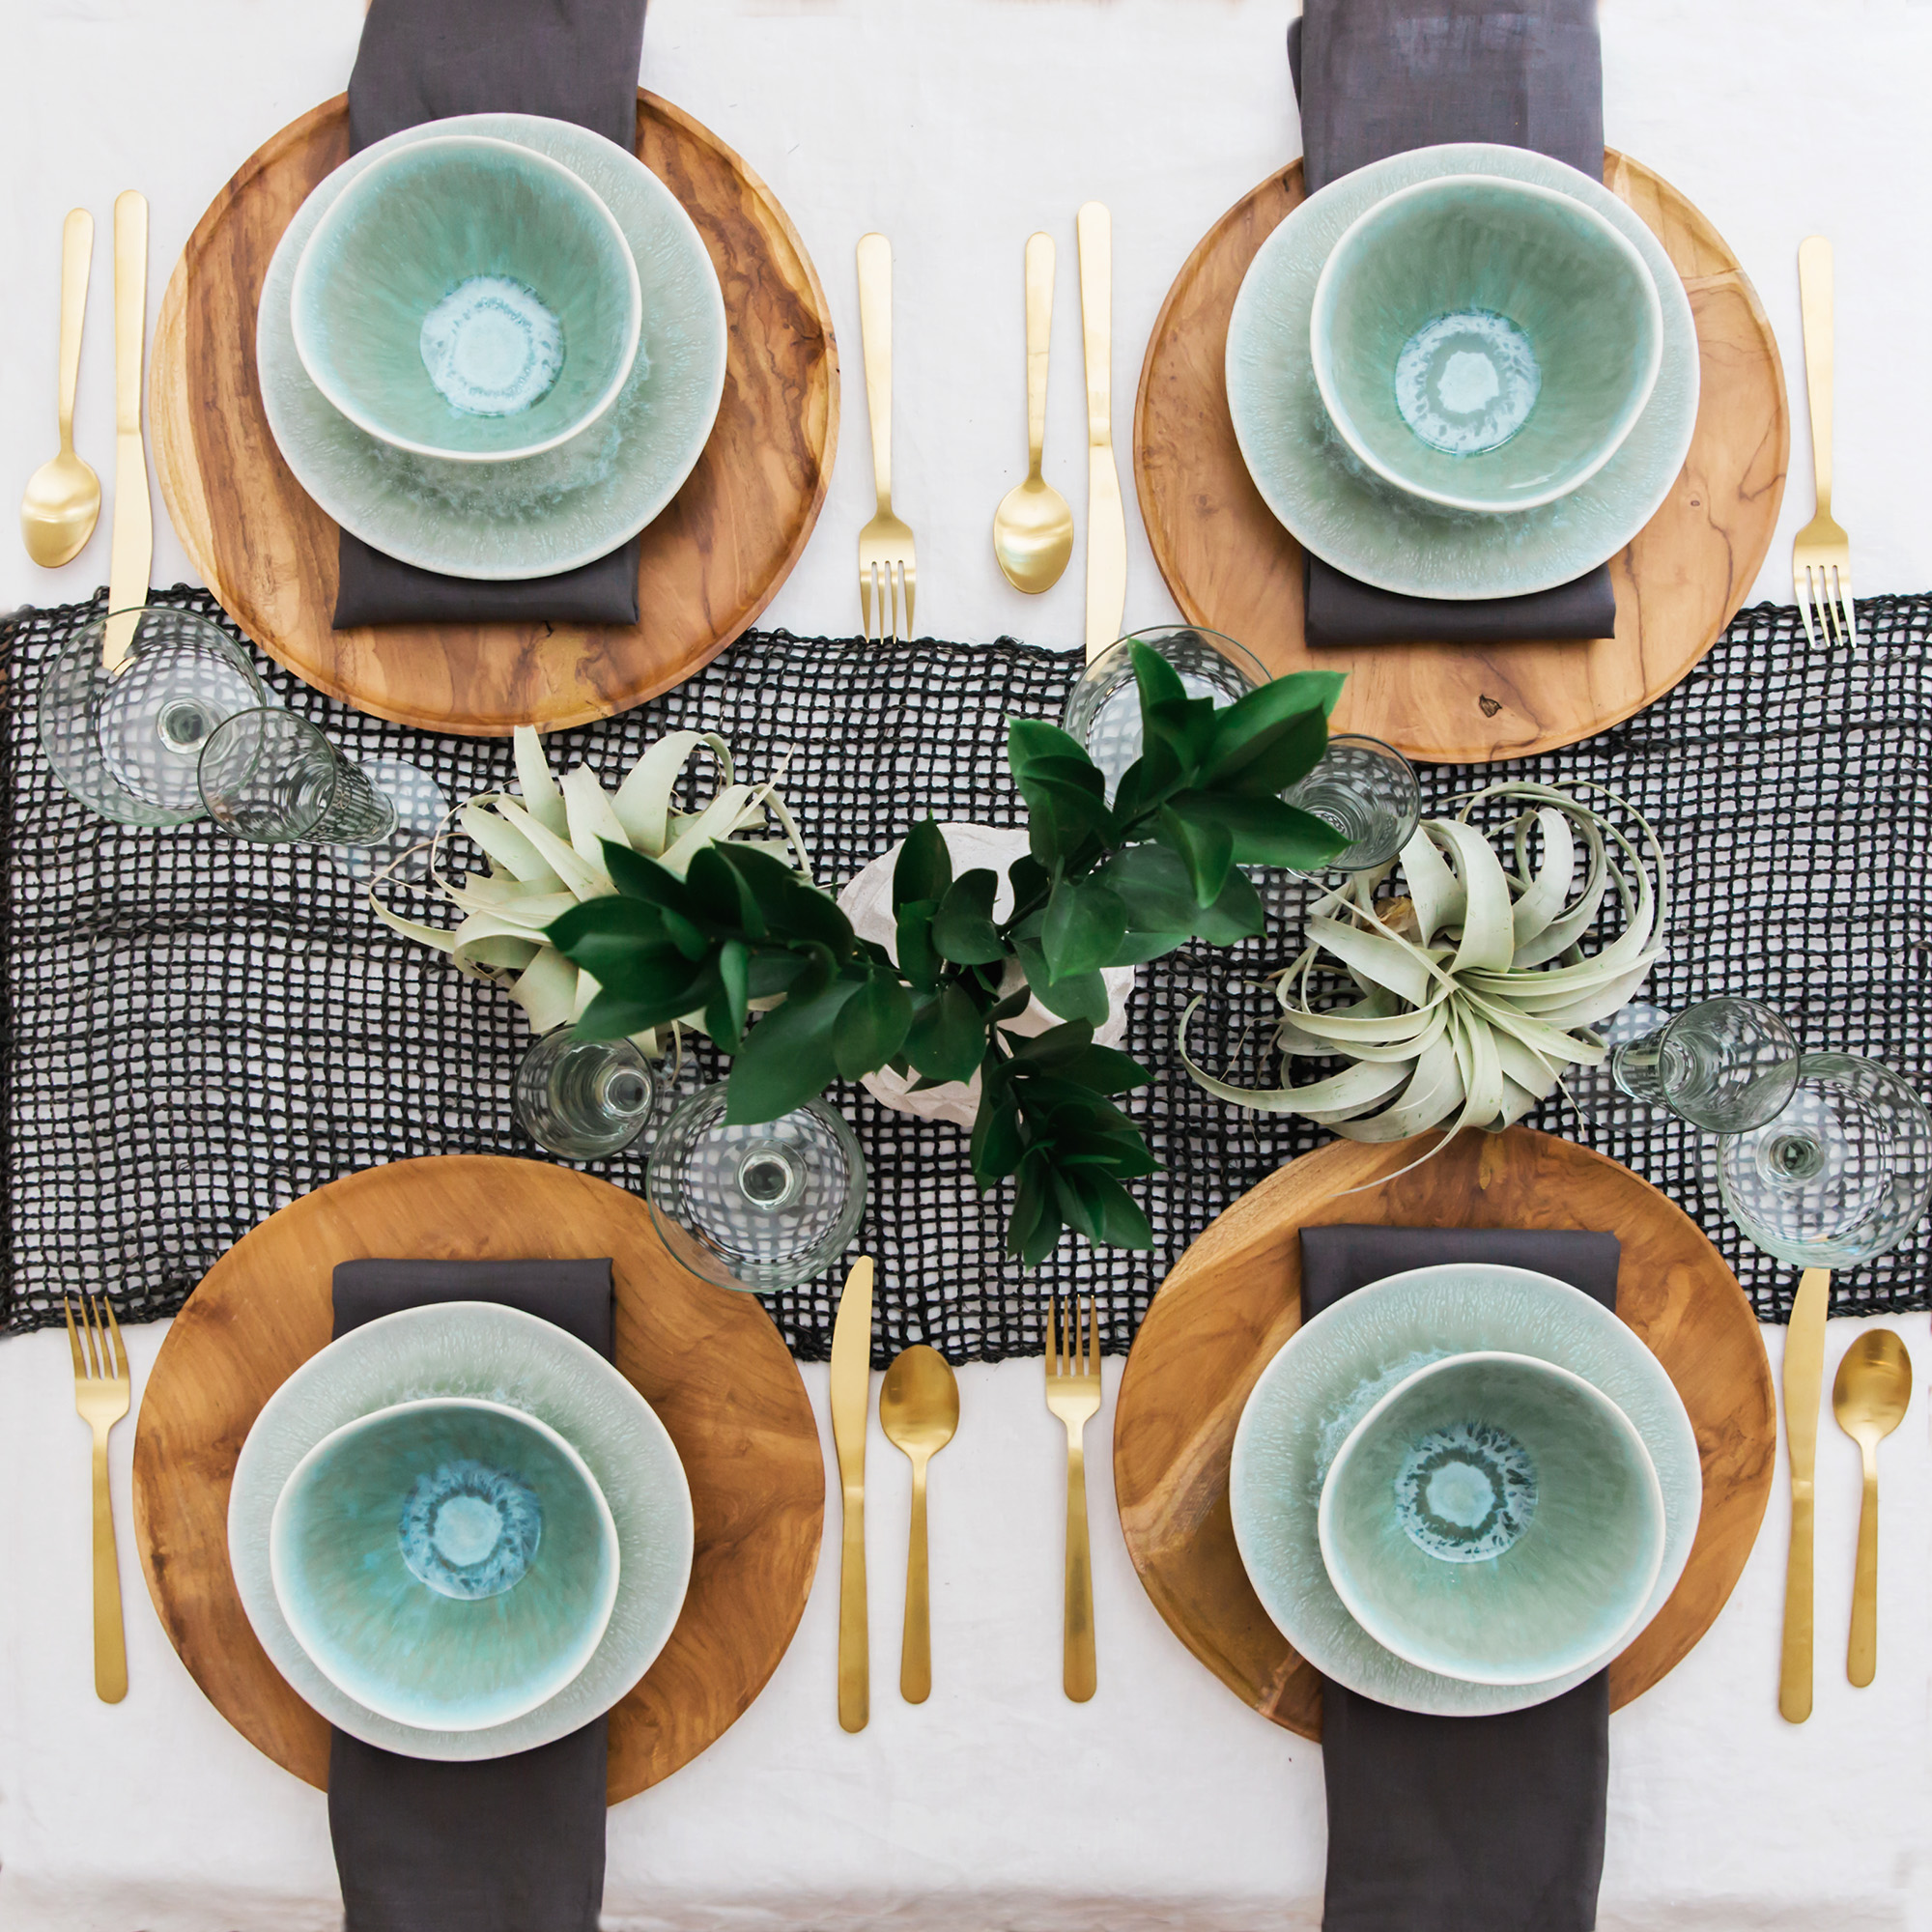 6 TIPS FOR CREATING EASY + AFFORDABLE TABLE SETTINGS